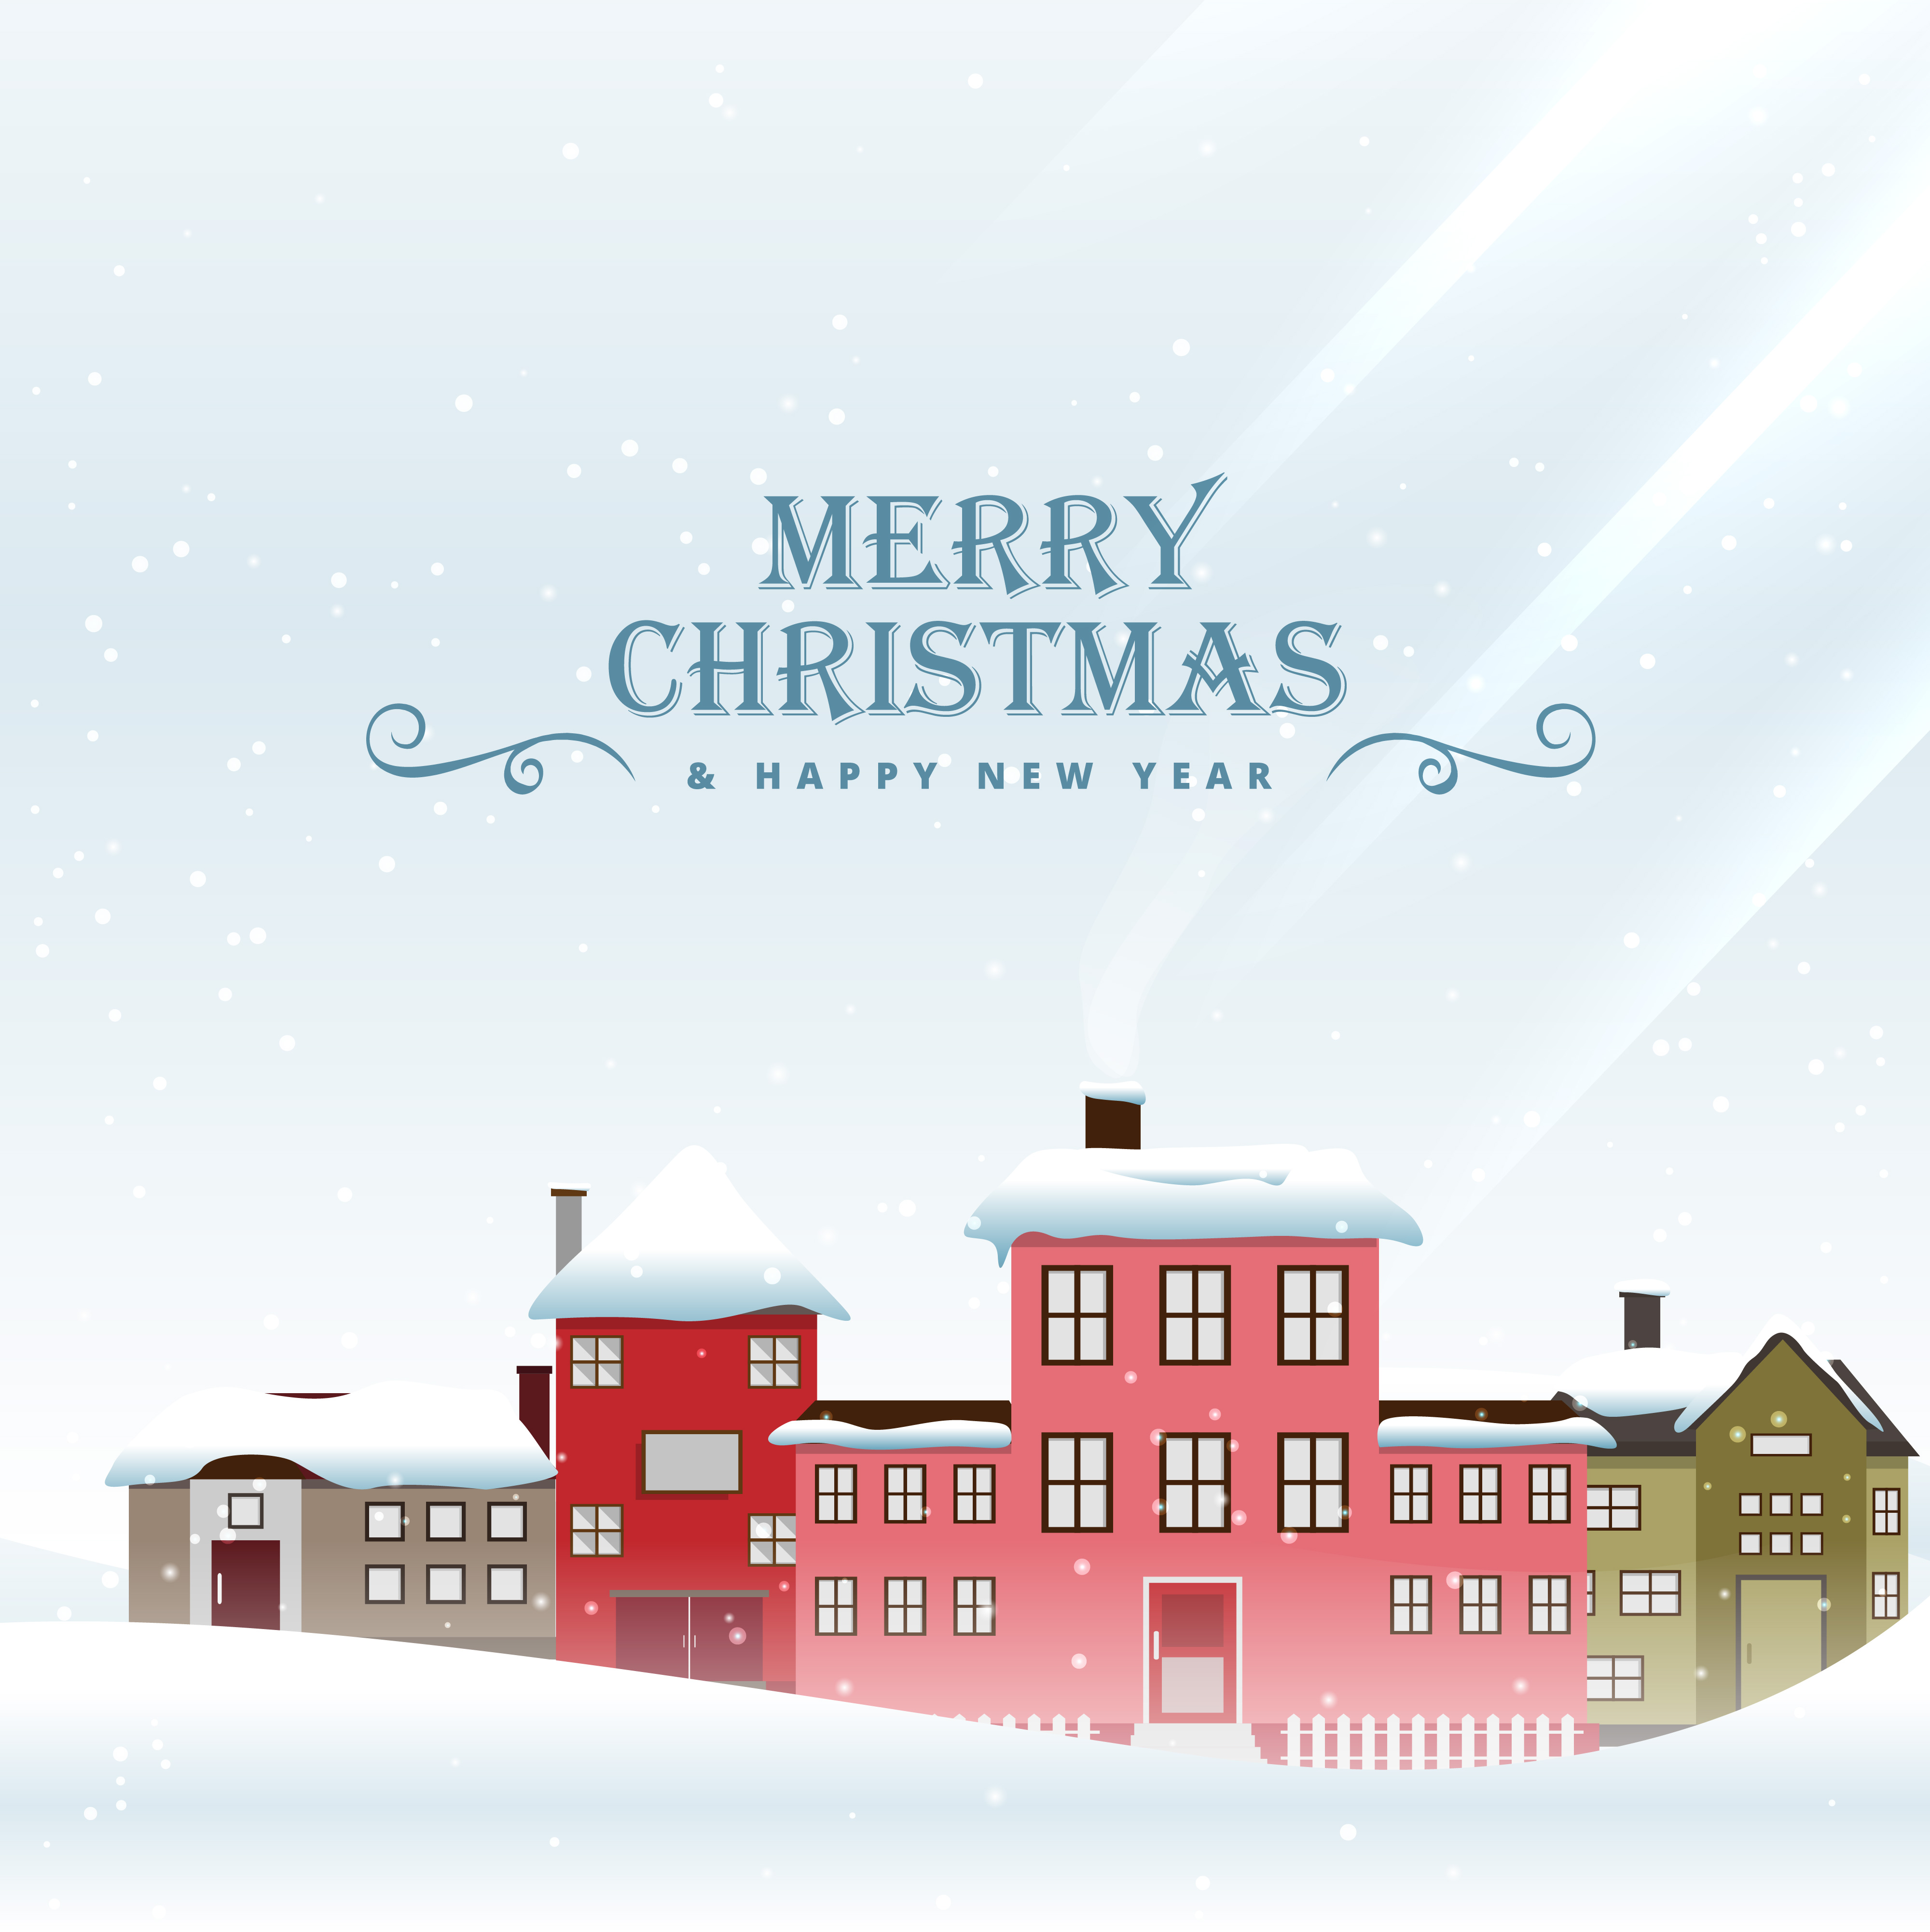 Merry Christmas Festival Greeting With Houses Covered With Snow